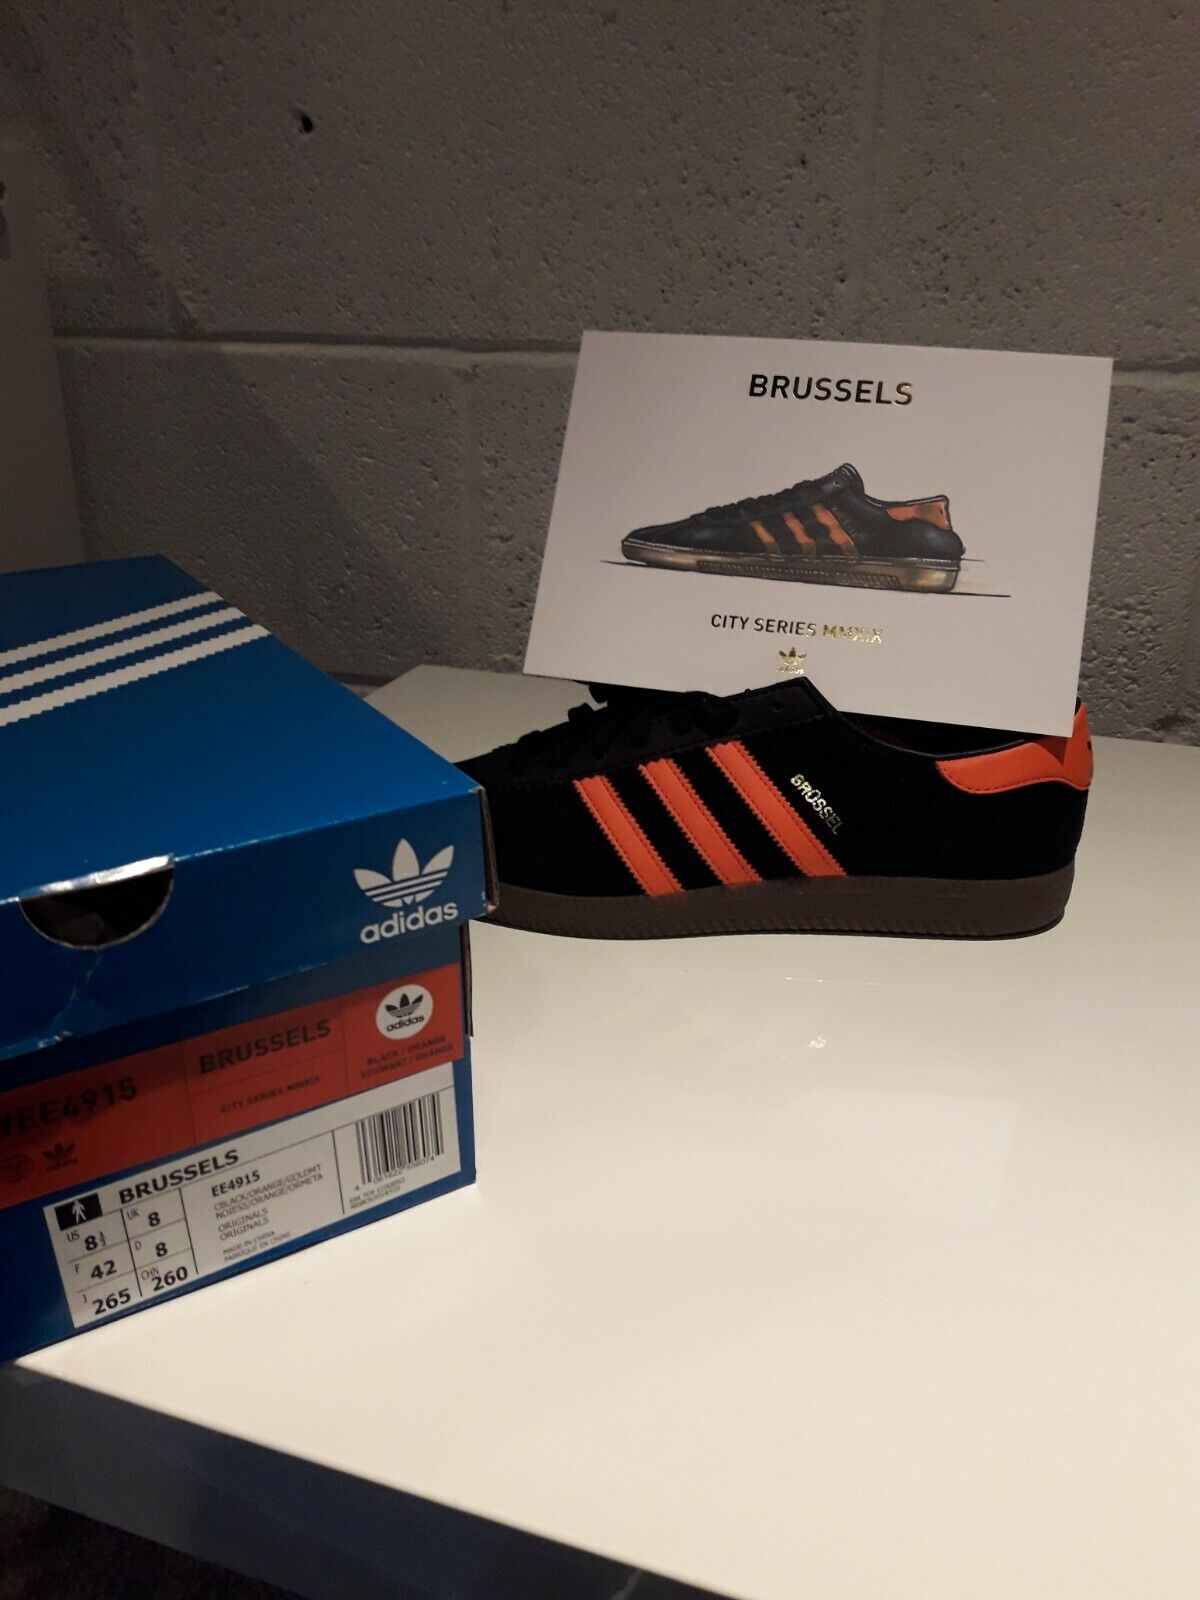 Adidas Brussel 8 Brand New un-worn with box and card etc